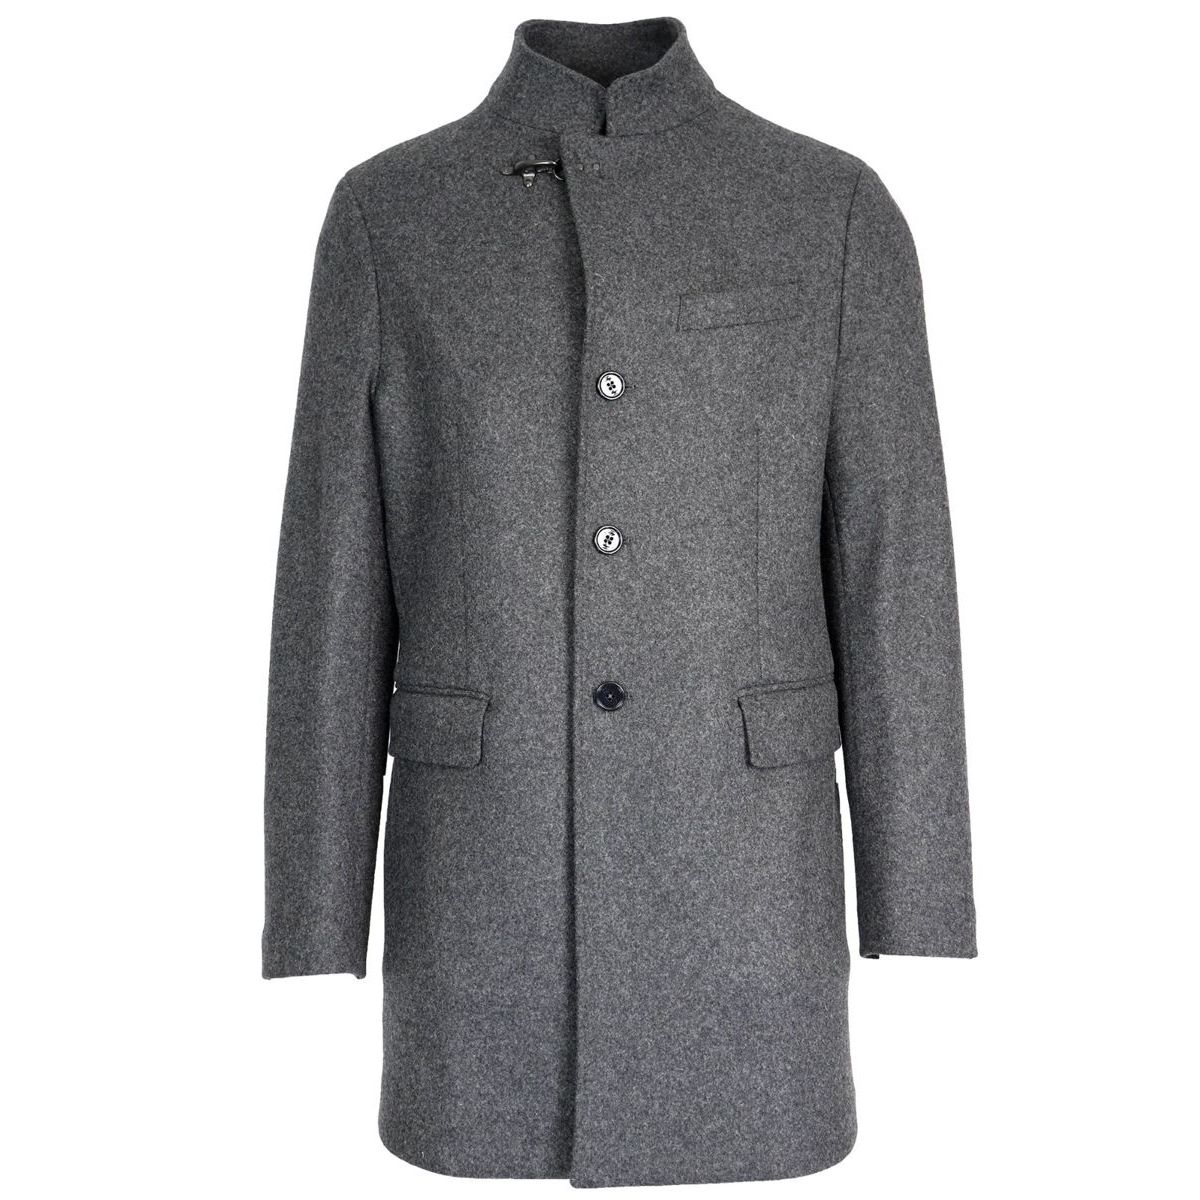 Wool cloth coat with iconic hook Grey Fay